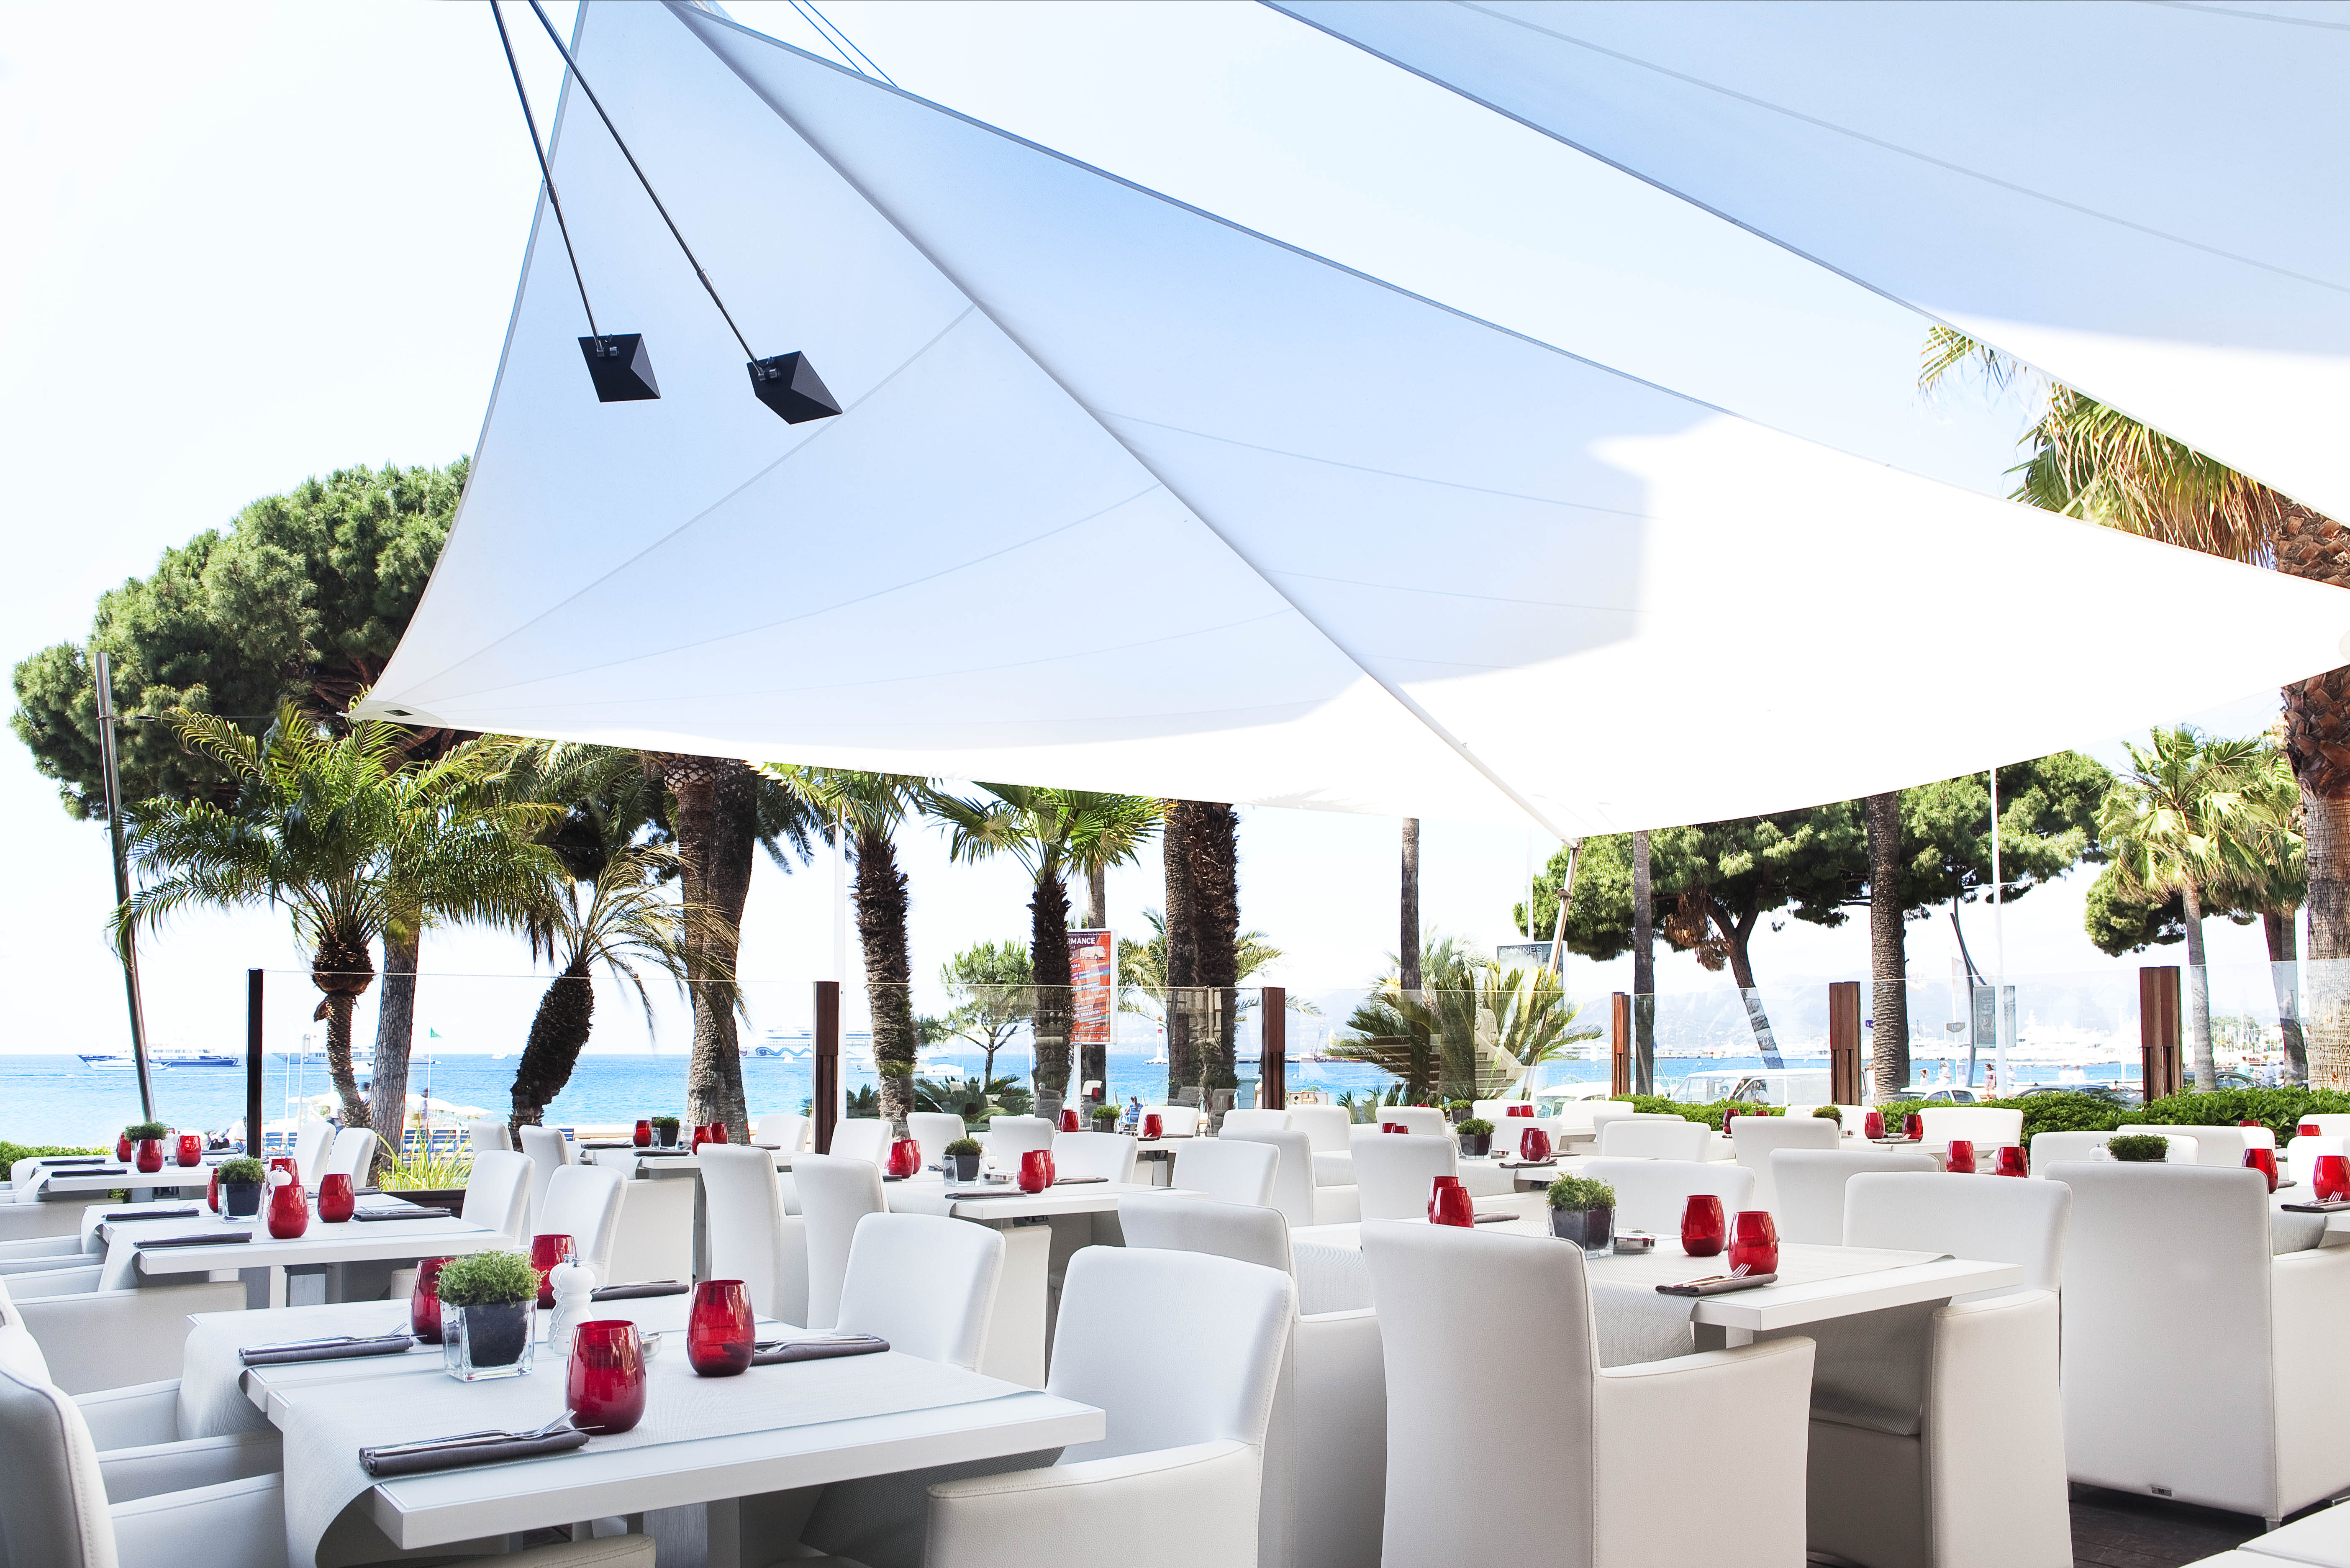 jw,cannes-france-le grill-36 md